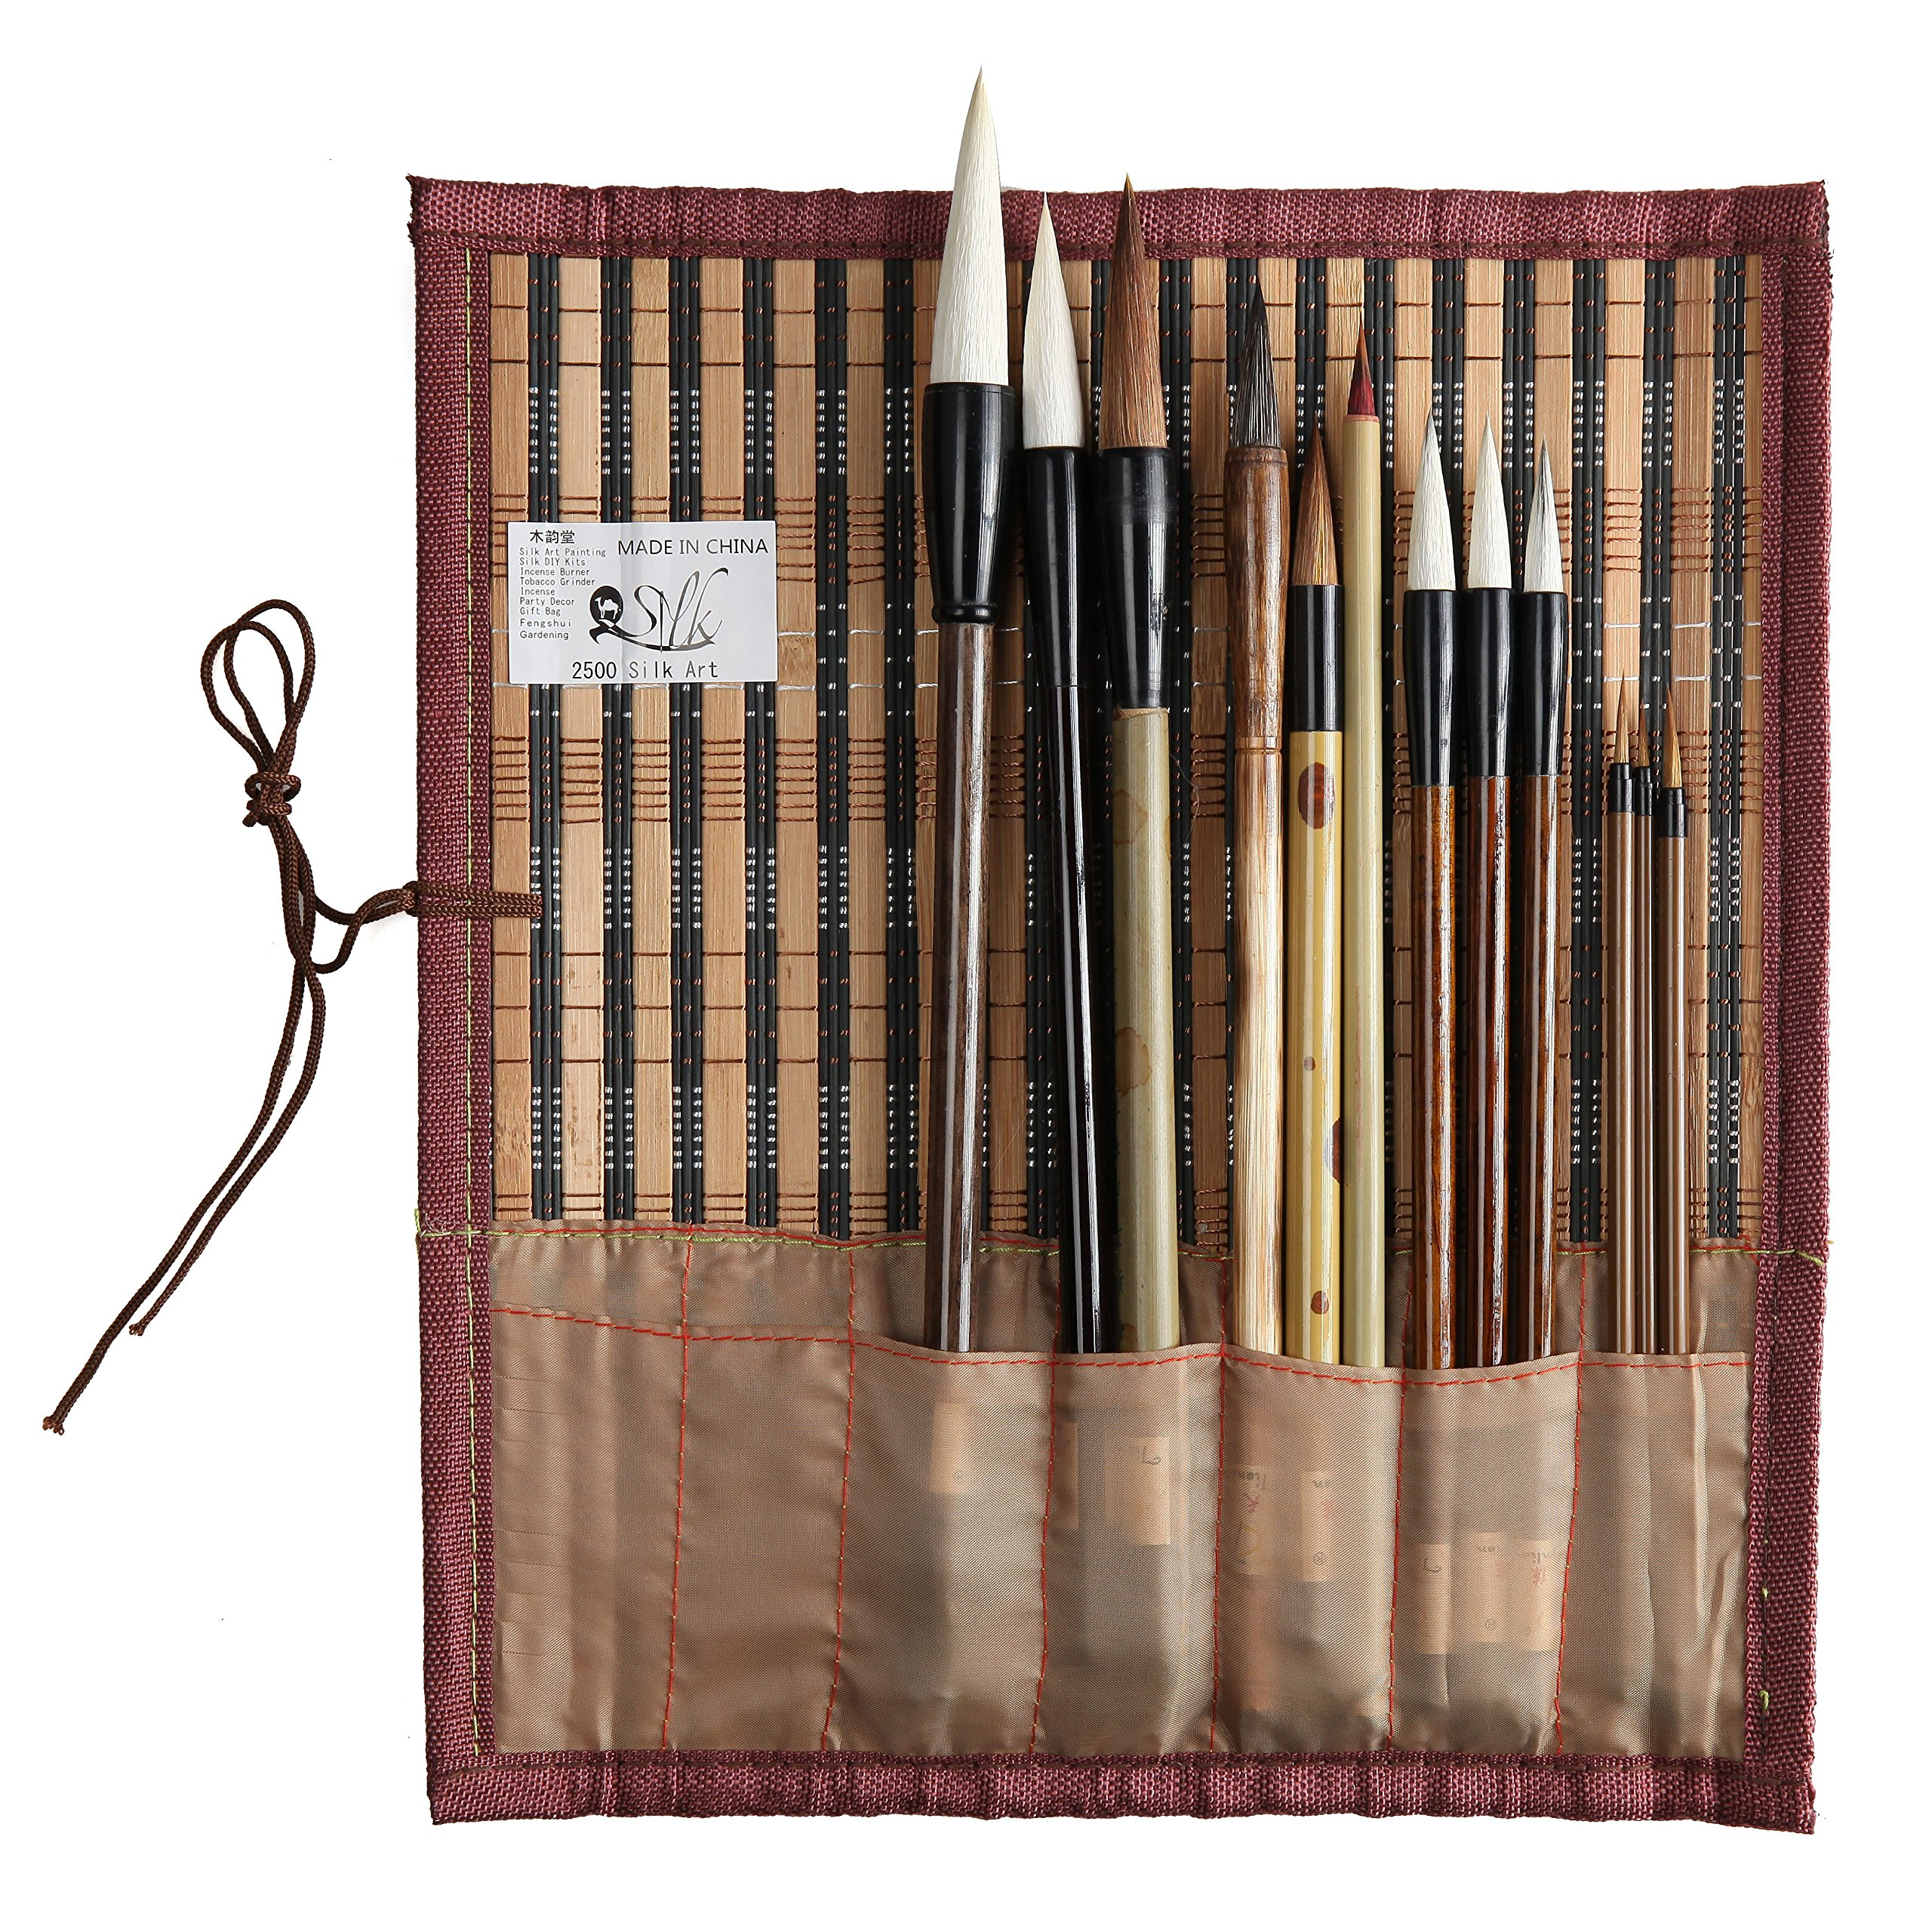 2500 Painting and Calligraphy Art Professional Chinese Art Brush Set 12 Pcs Chinese Paint Brush Kit